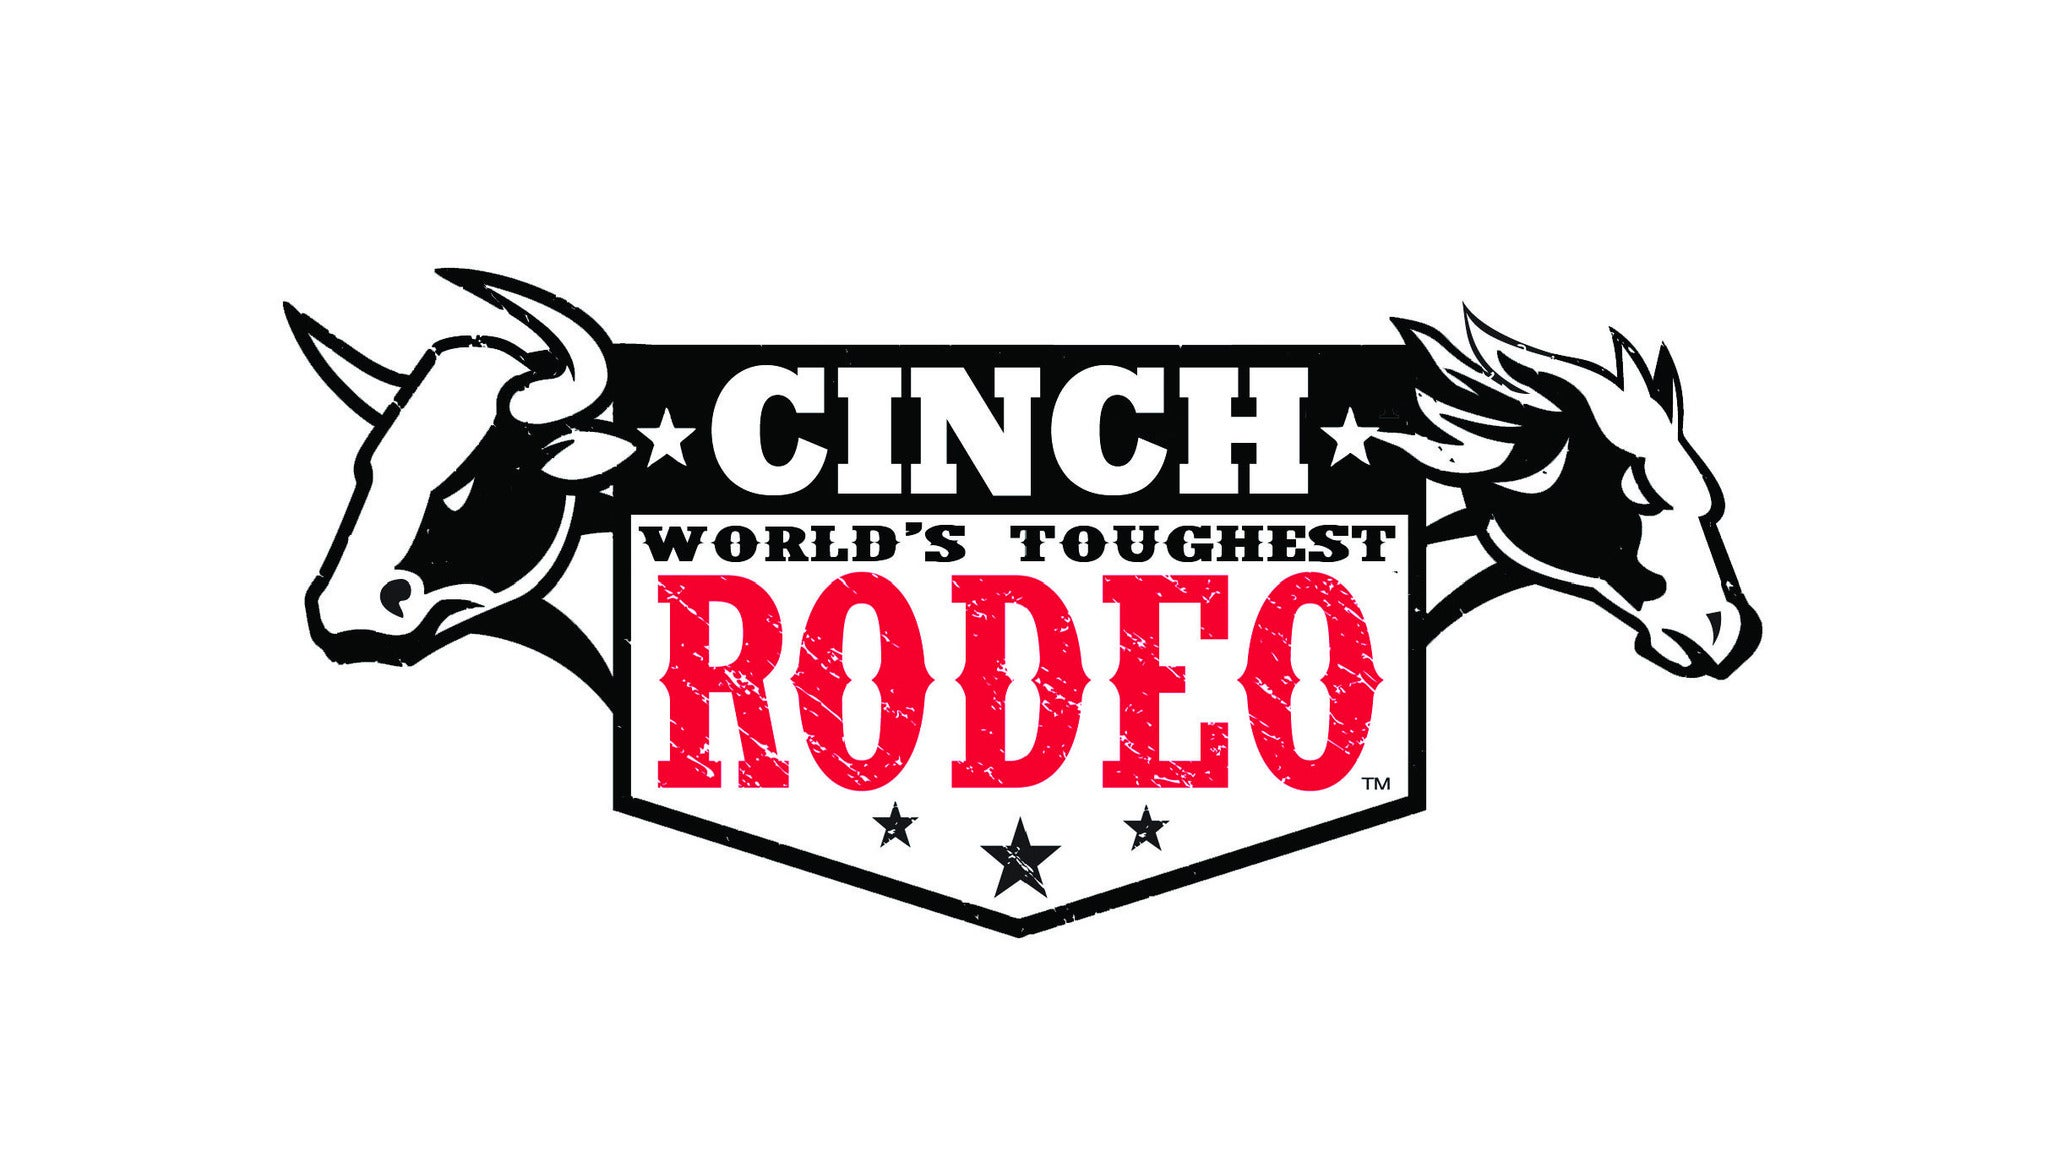 World's Toughest Rodeo pre-sale password for performance tickets in Saint Paul, MN (Xcel Energy Center)